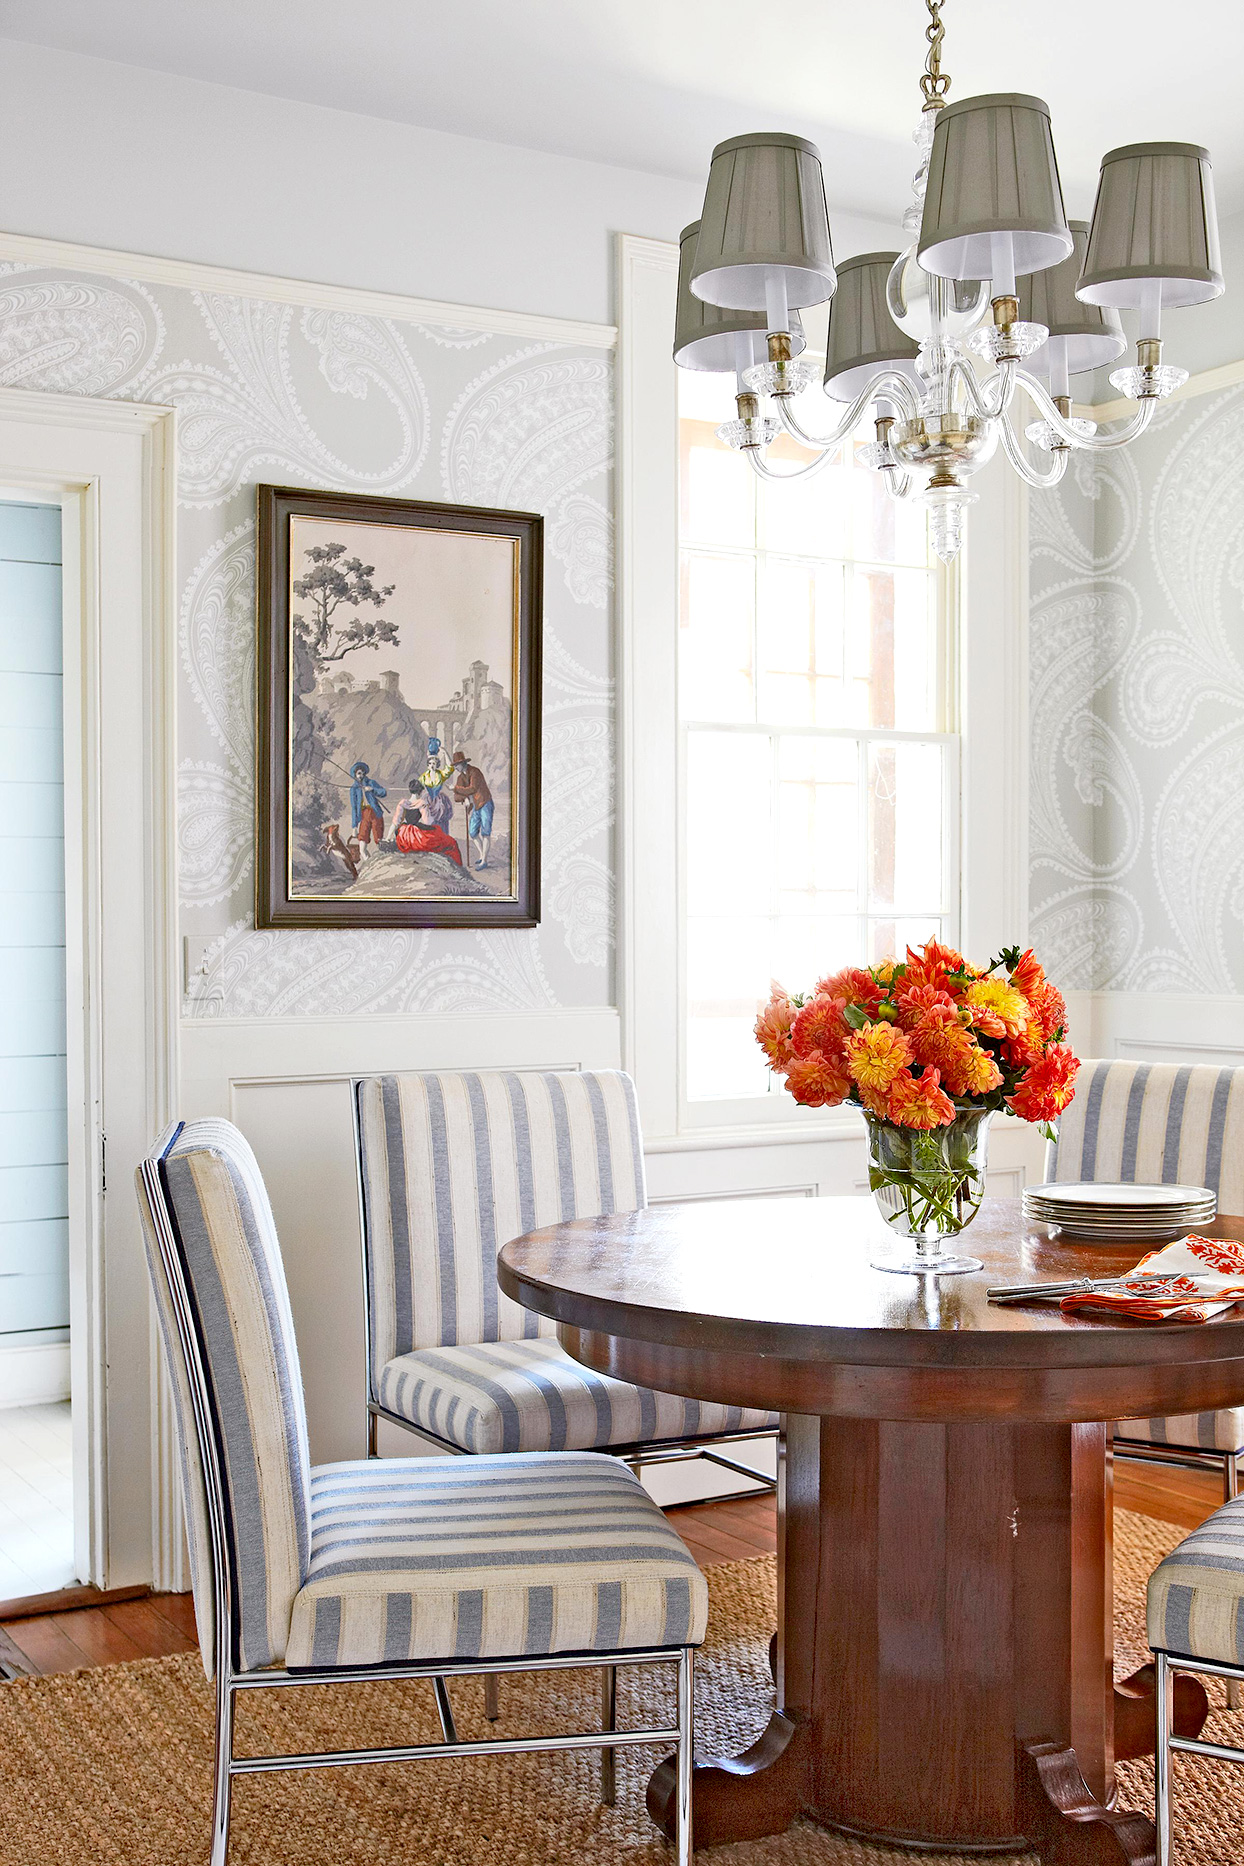 dining area with wooden table and blue and white striped chairs